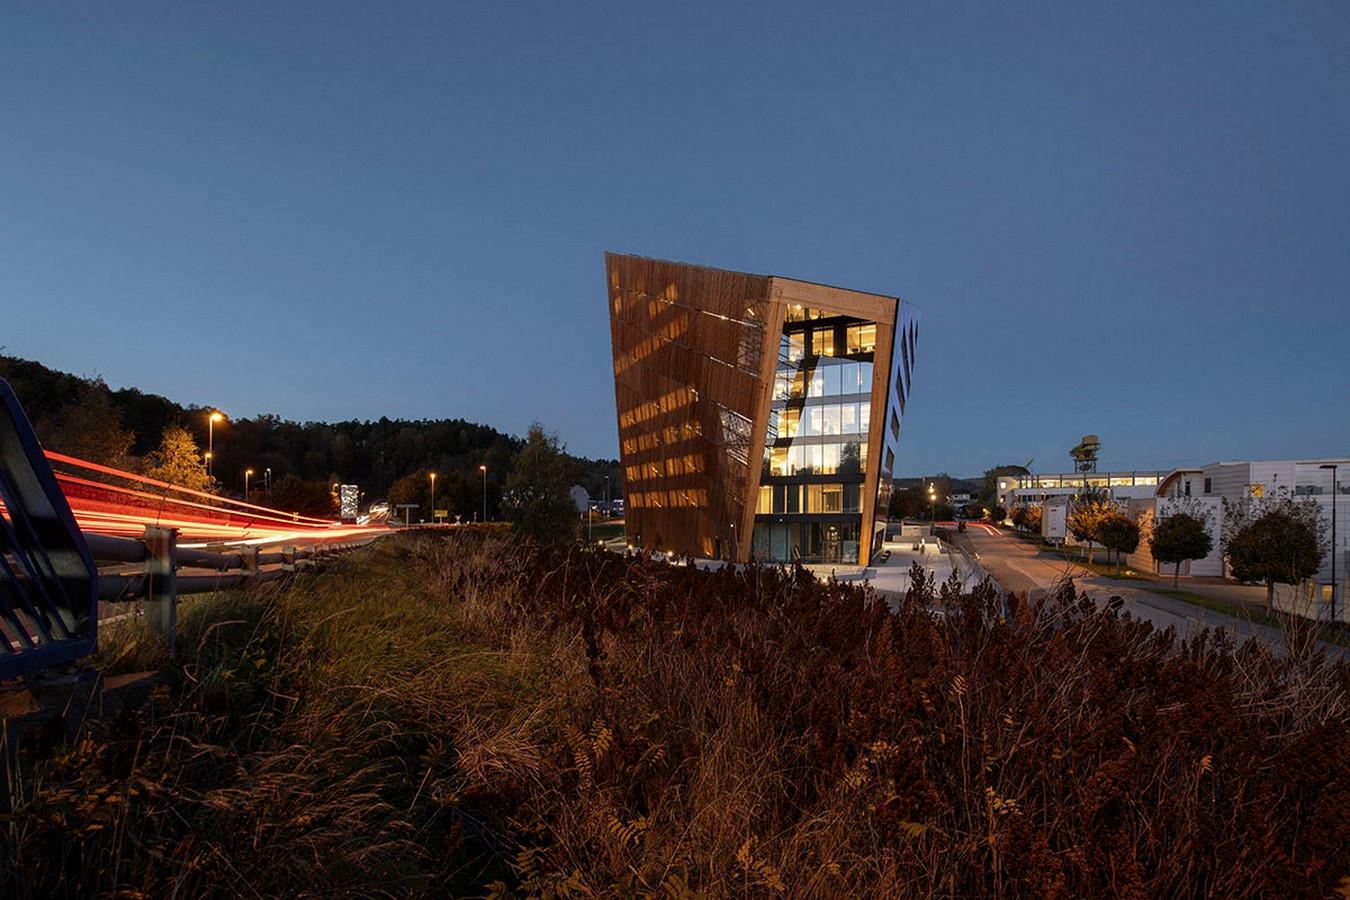 4th Energy Positive Powerhouse In Telemark With Energy Producing Façade And Roof designed by Snøhetta - Sheet1